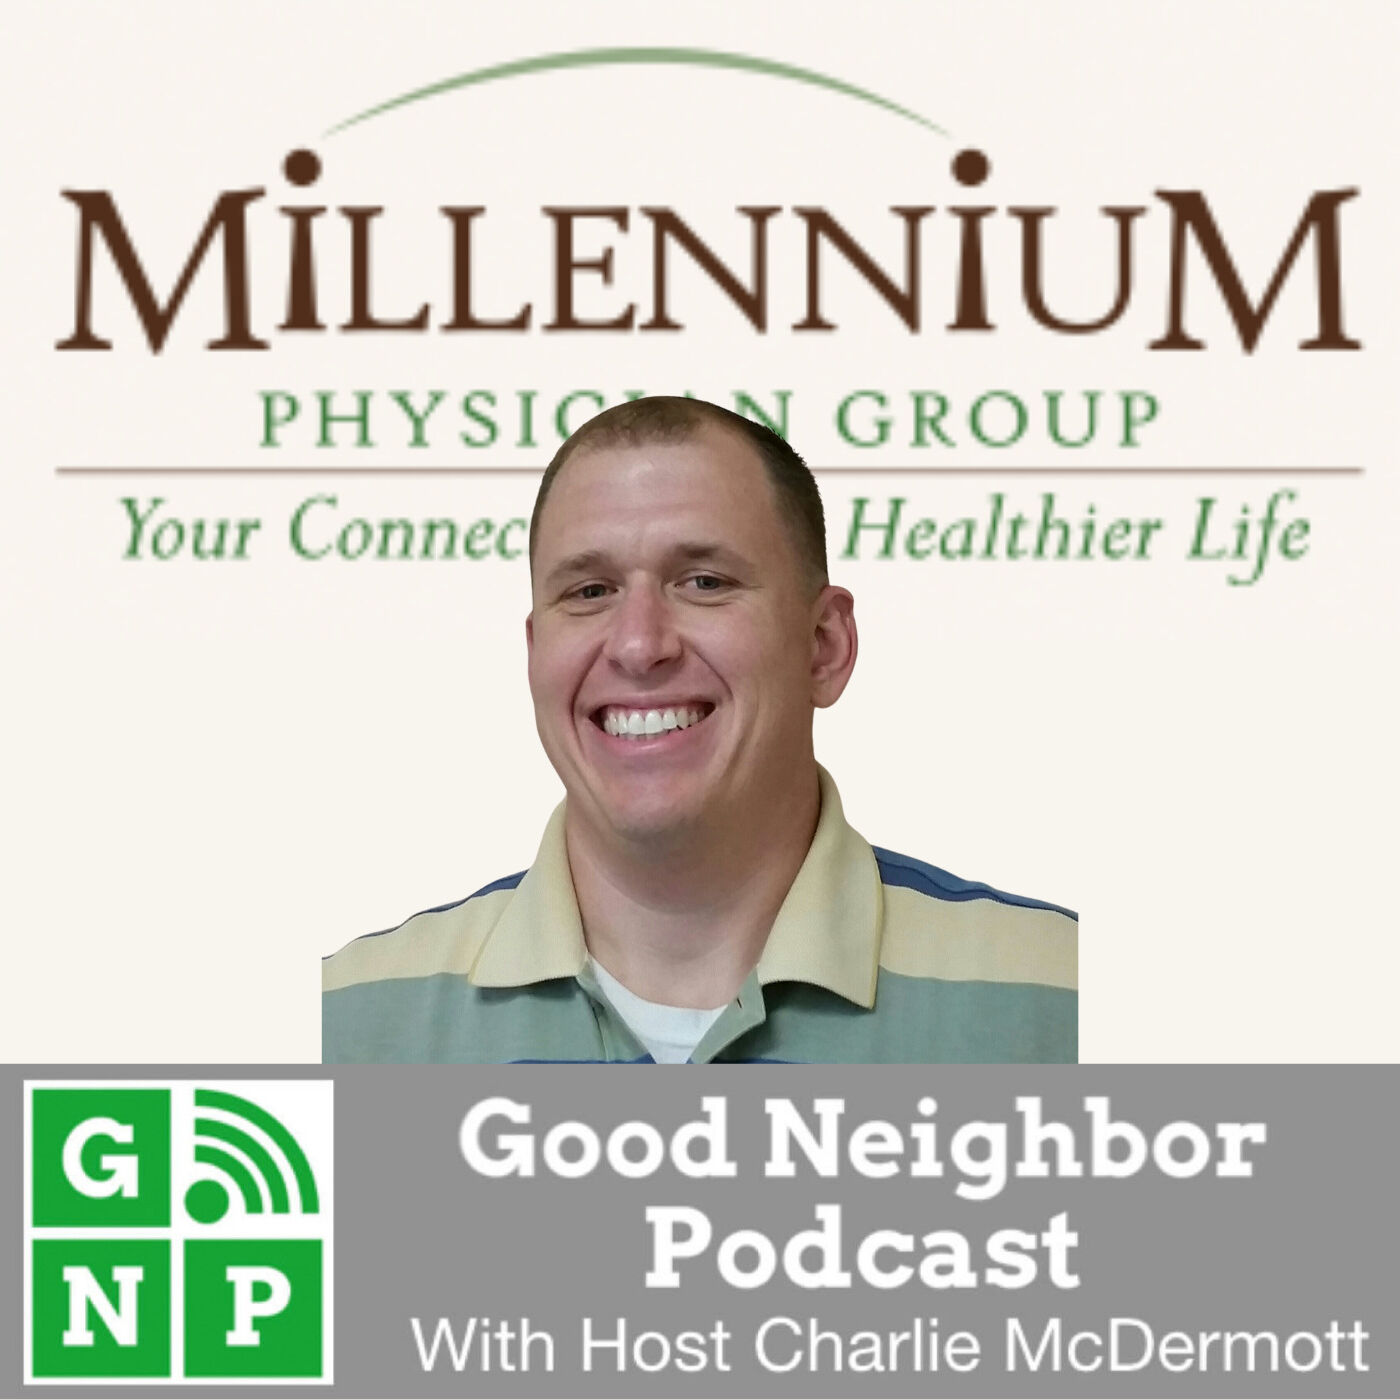 EP #556: Millennium Physician Group Physical Therapy with Adam Pennell